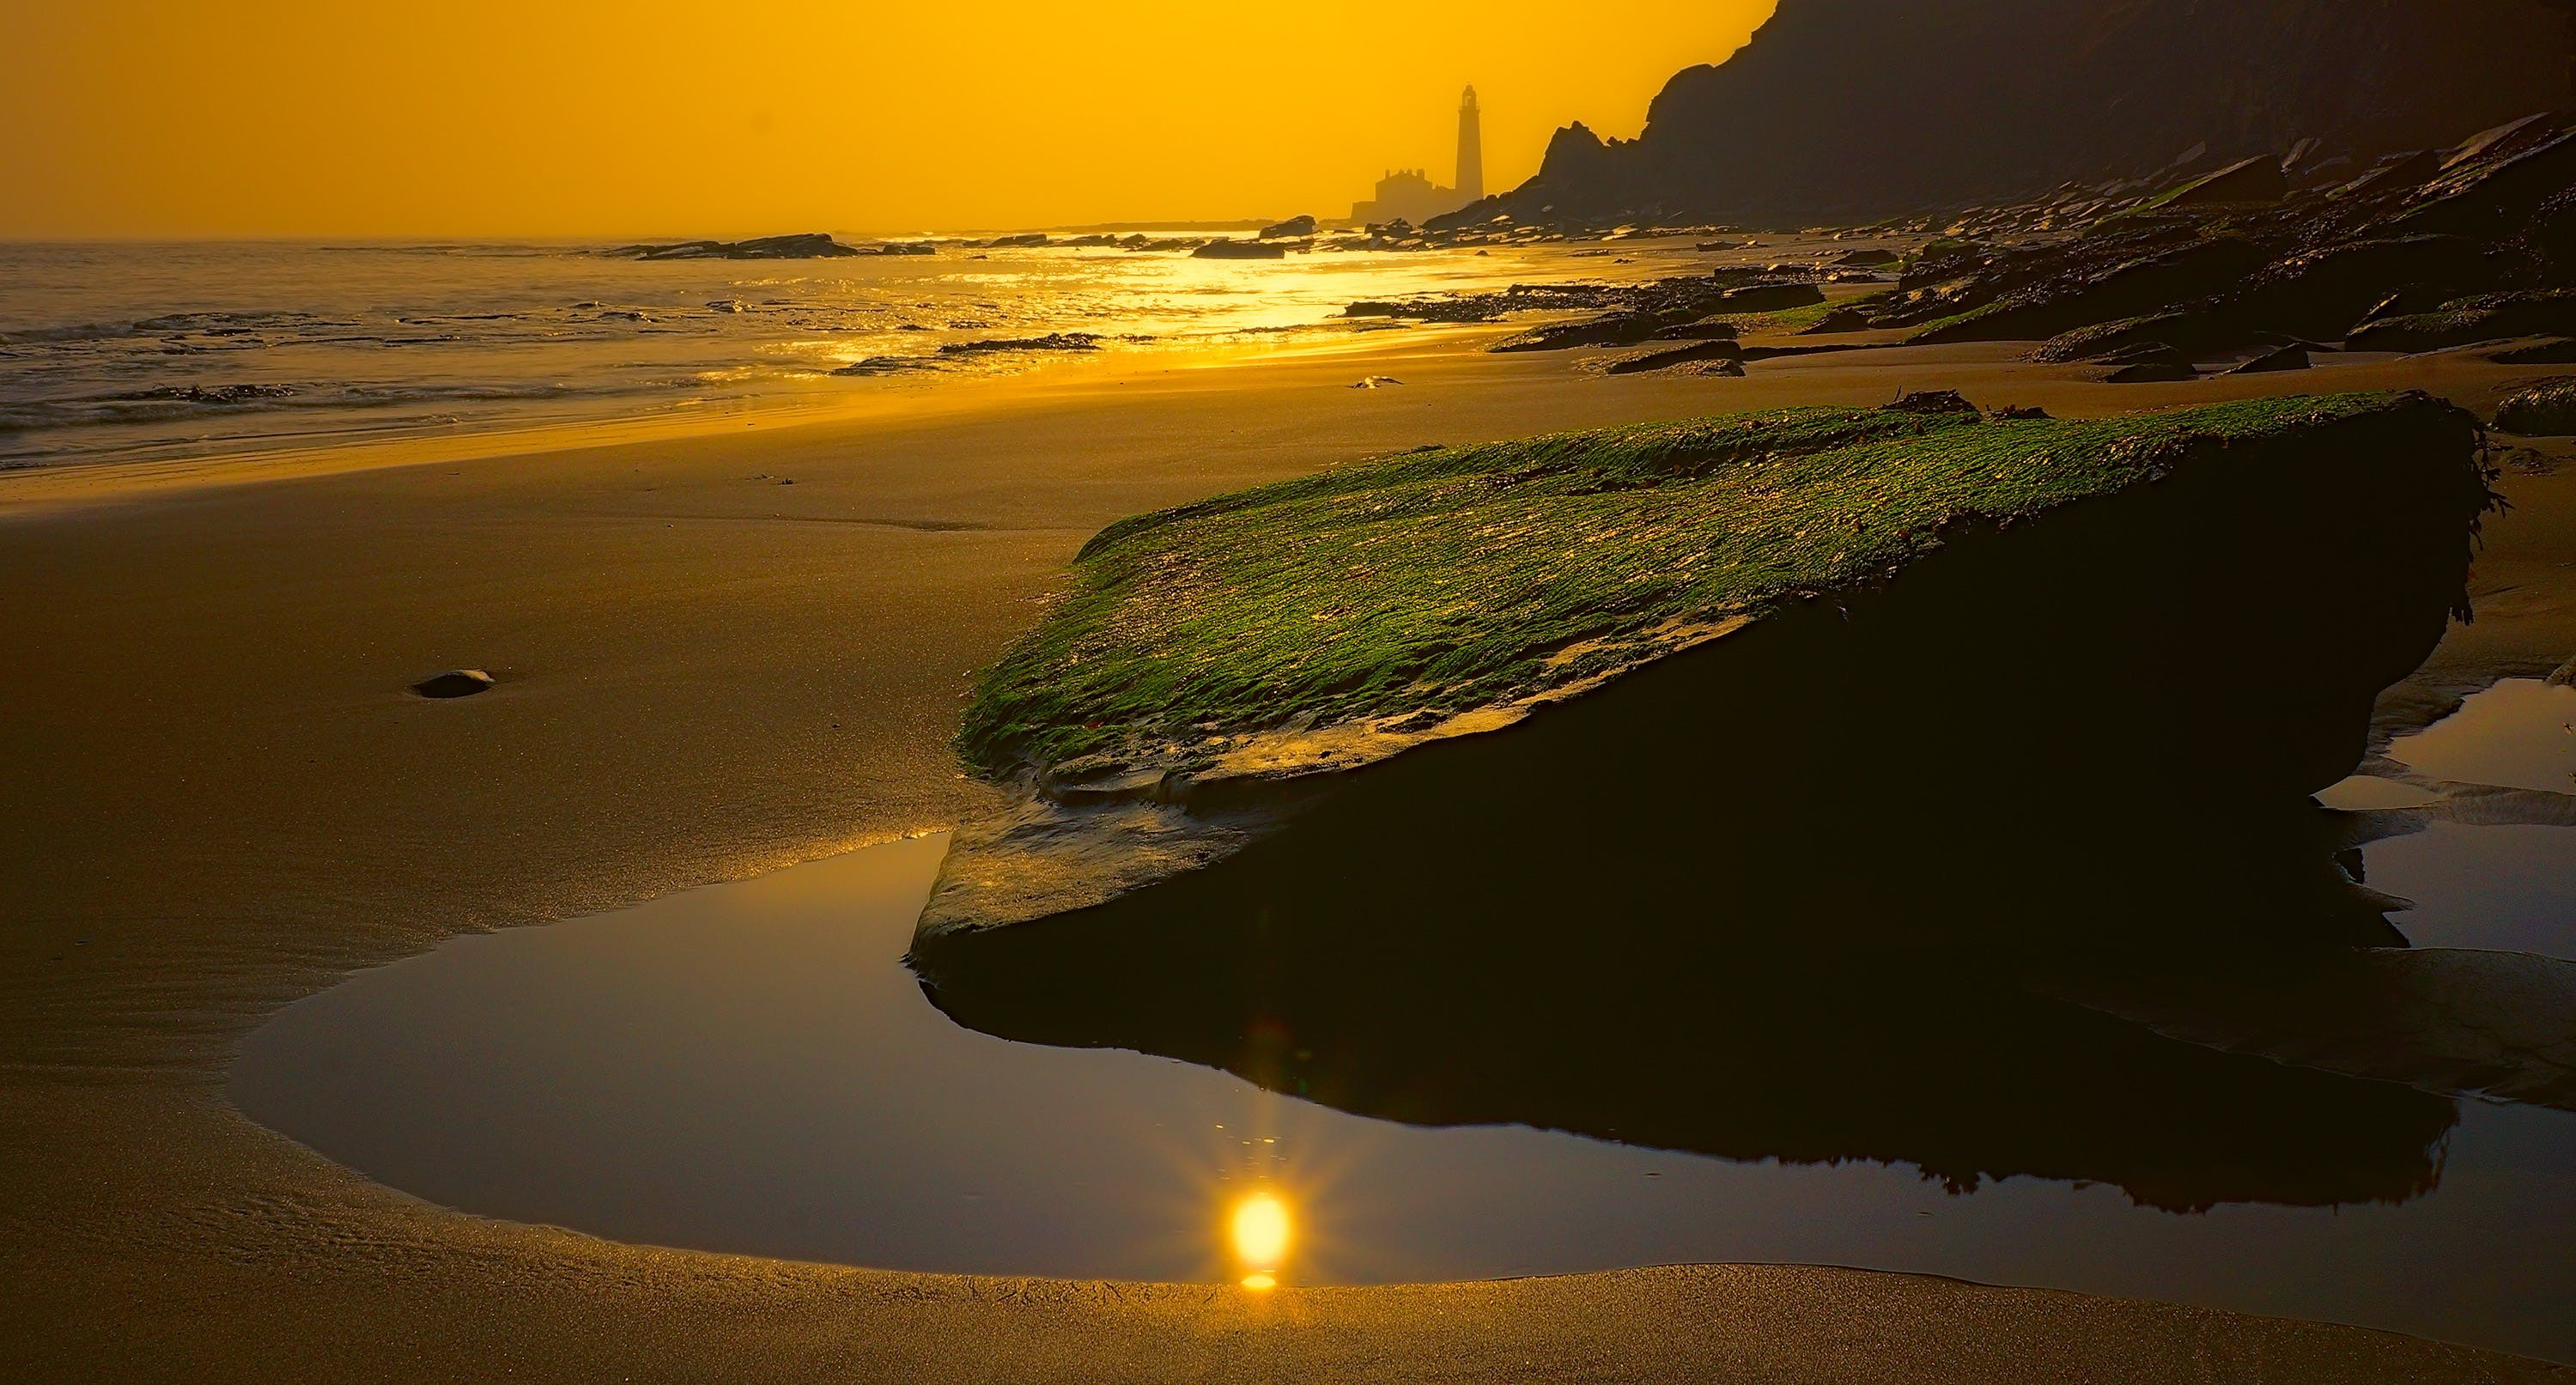 Photo Of Seashore During Sunset